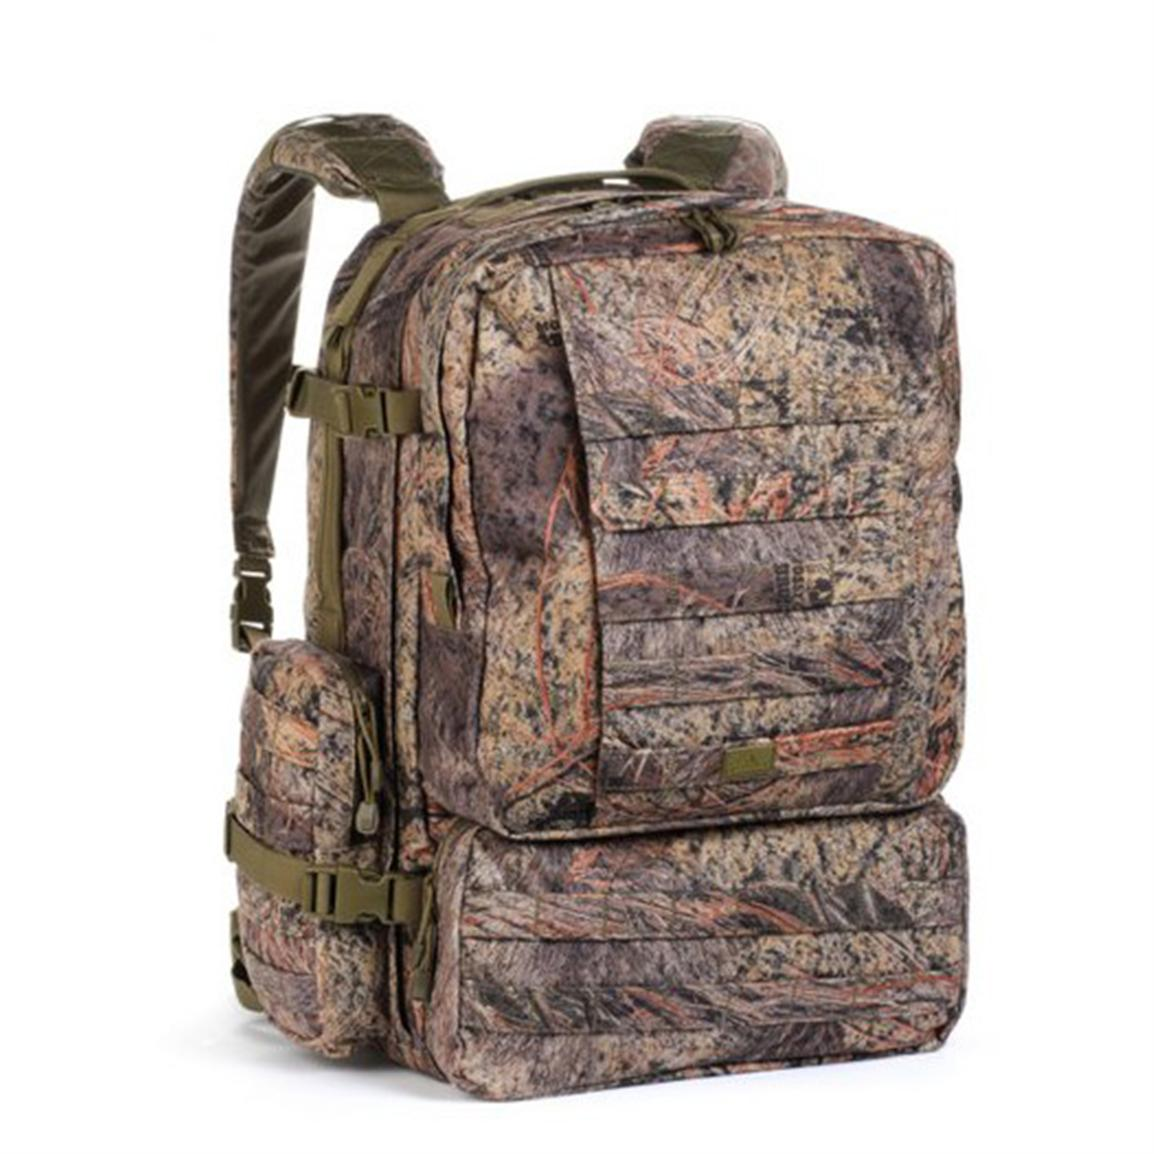 Red Rock Outdoor Gear® Mossy Oak® Diplomat Backpack, MO Brush